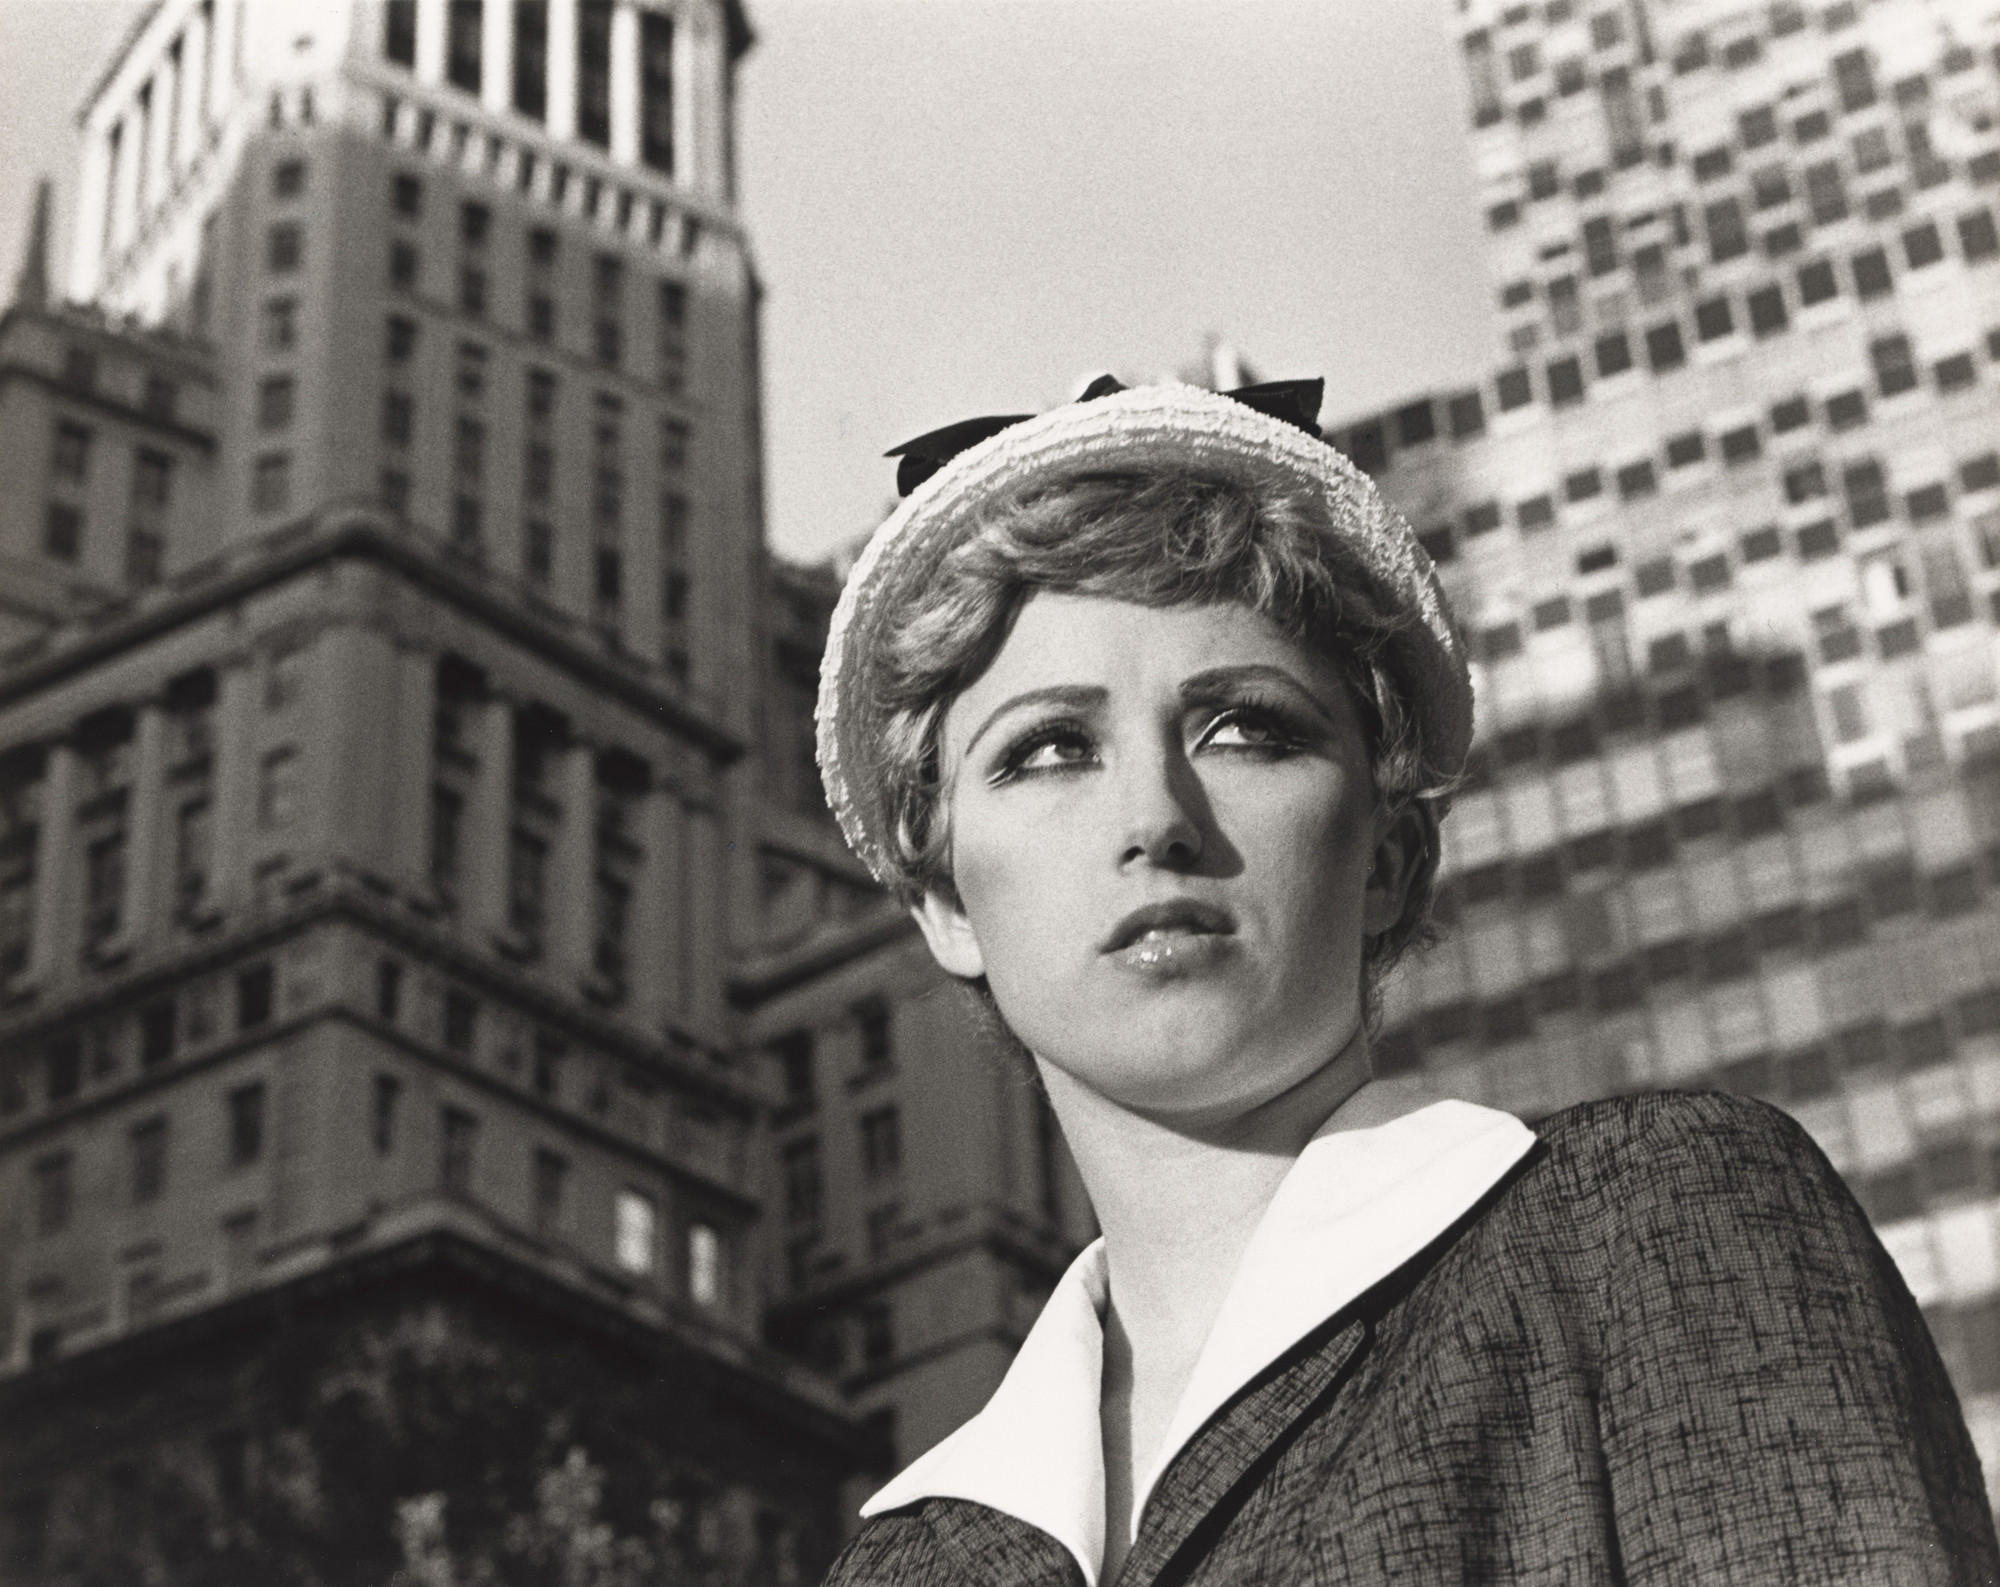 Cindy Sherman. Untitled Film Still #21. 1978